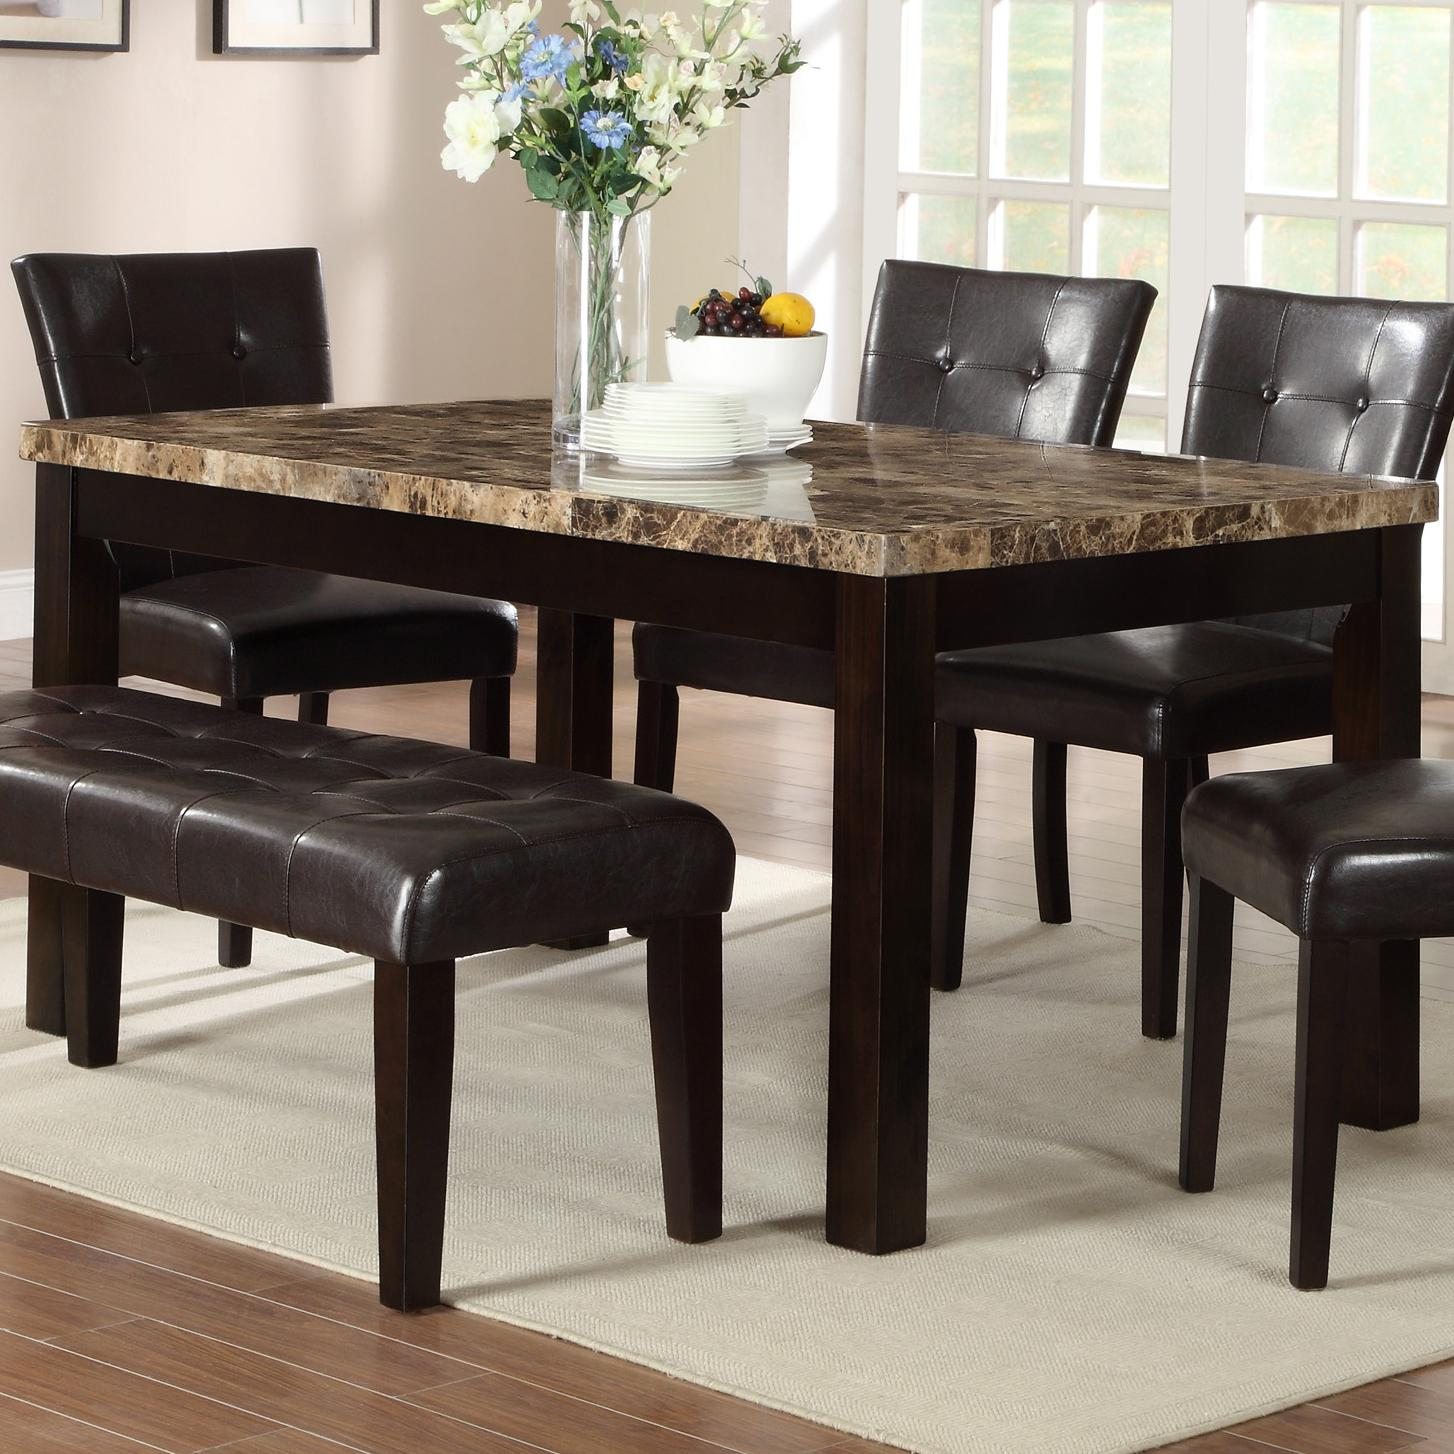 Crown Mark Bruce 2267t 3864 Rectangular Dining Table With Faux Marble Top Del Sol Furniture